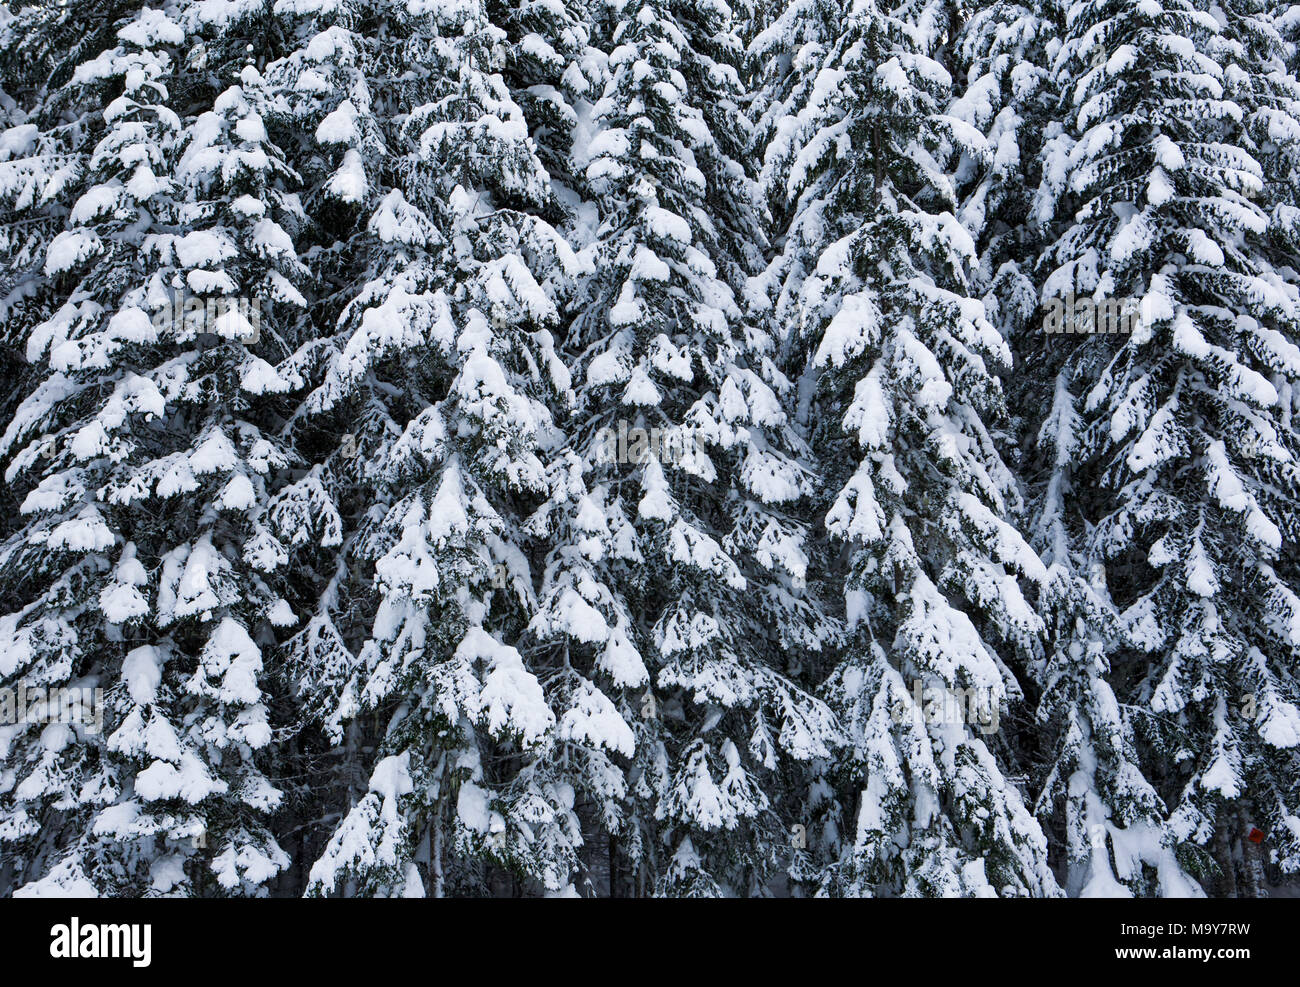 Snow covered coniferous trees on the East slopes of the Cascade Mountains in Washington State - Stock Image